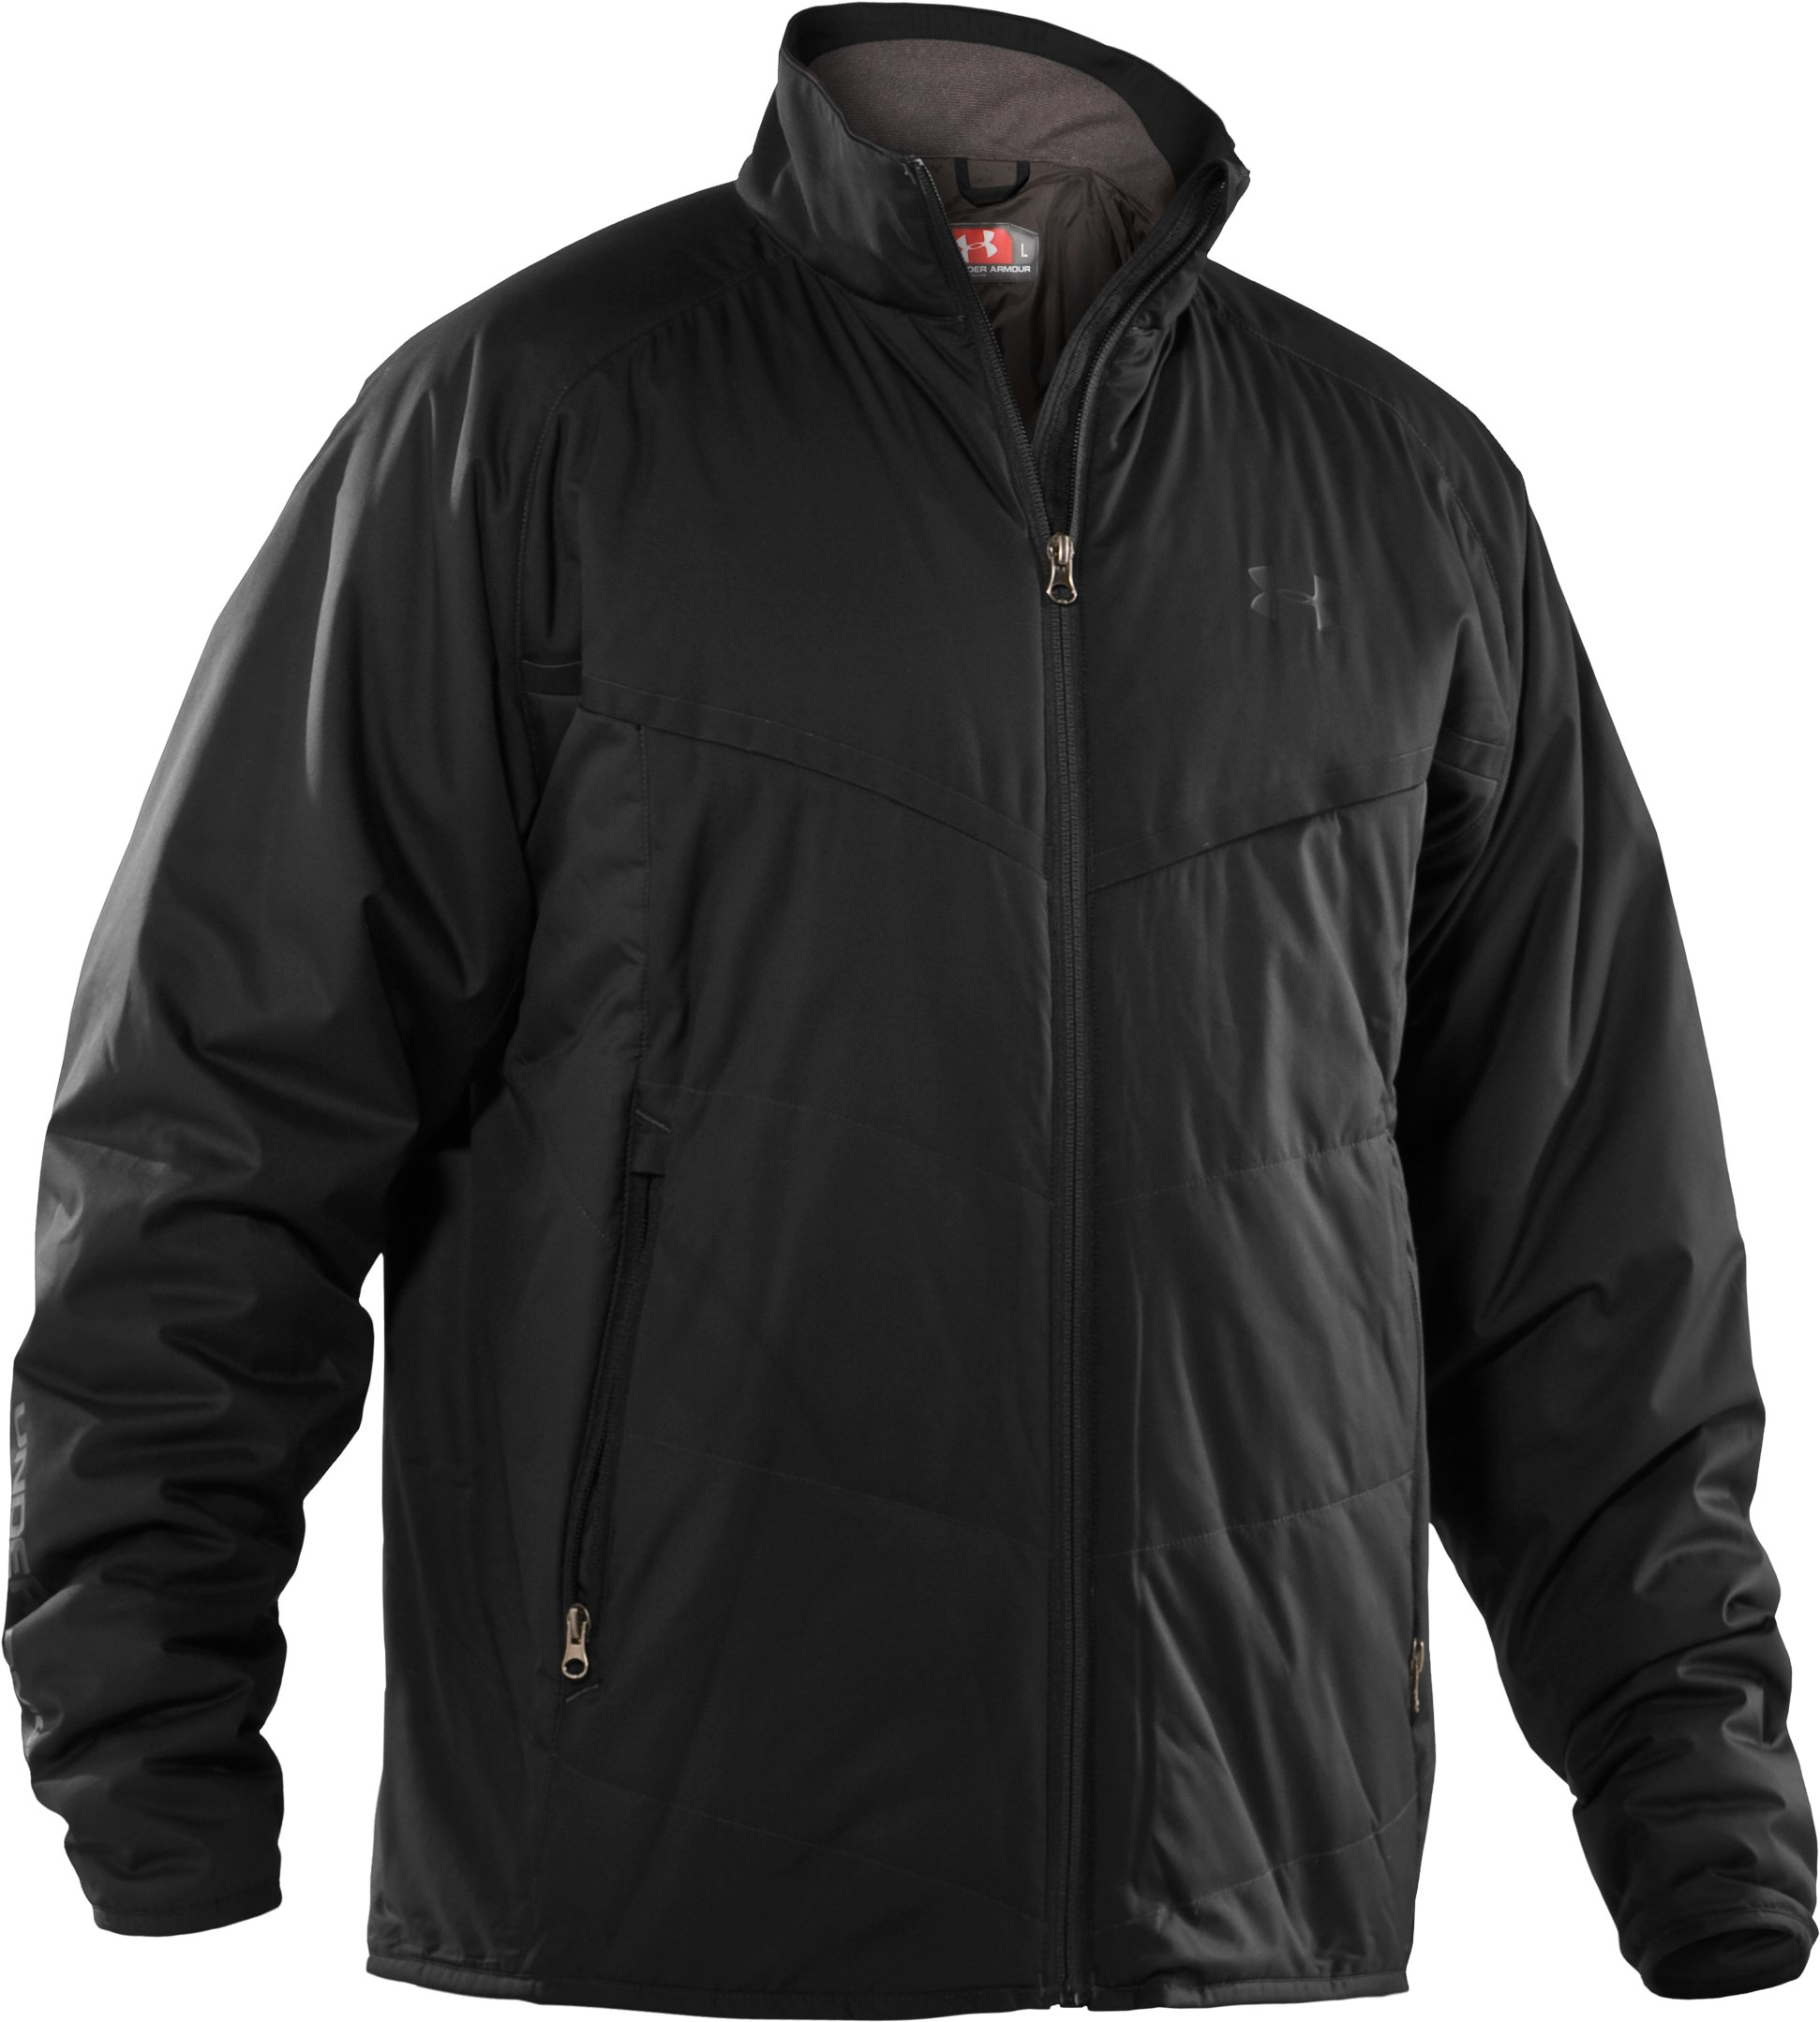 Men's ArmourLoft® Mountain Jacket, Black , undefined